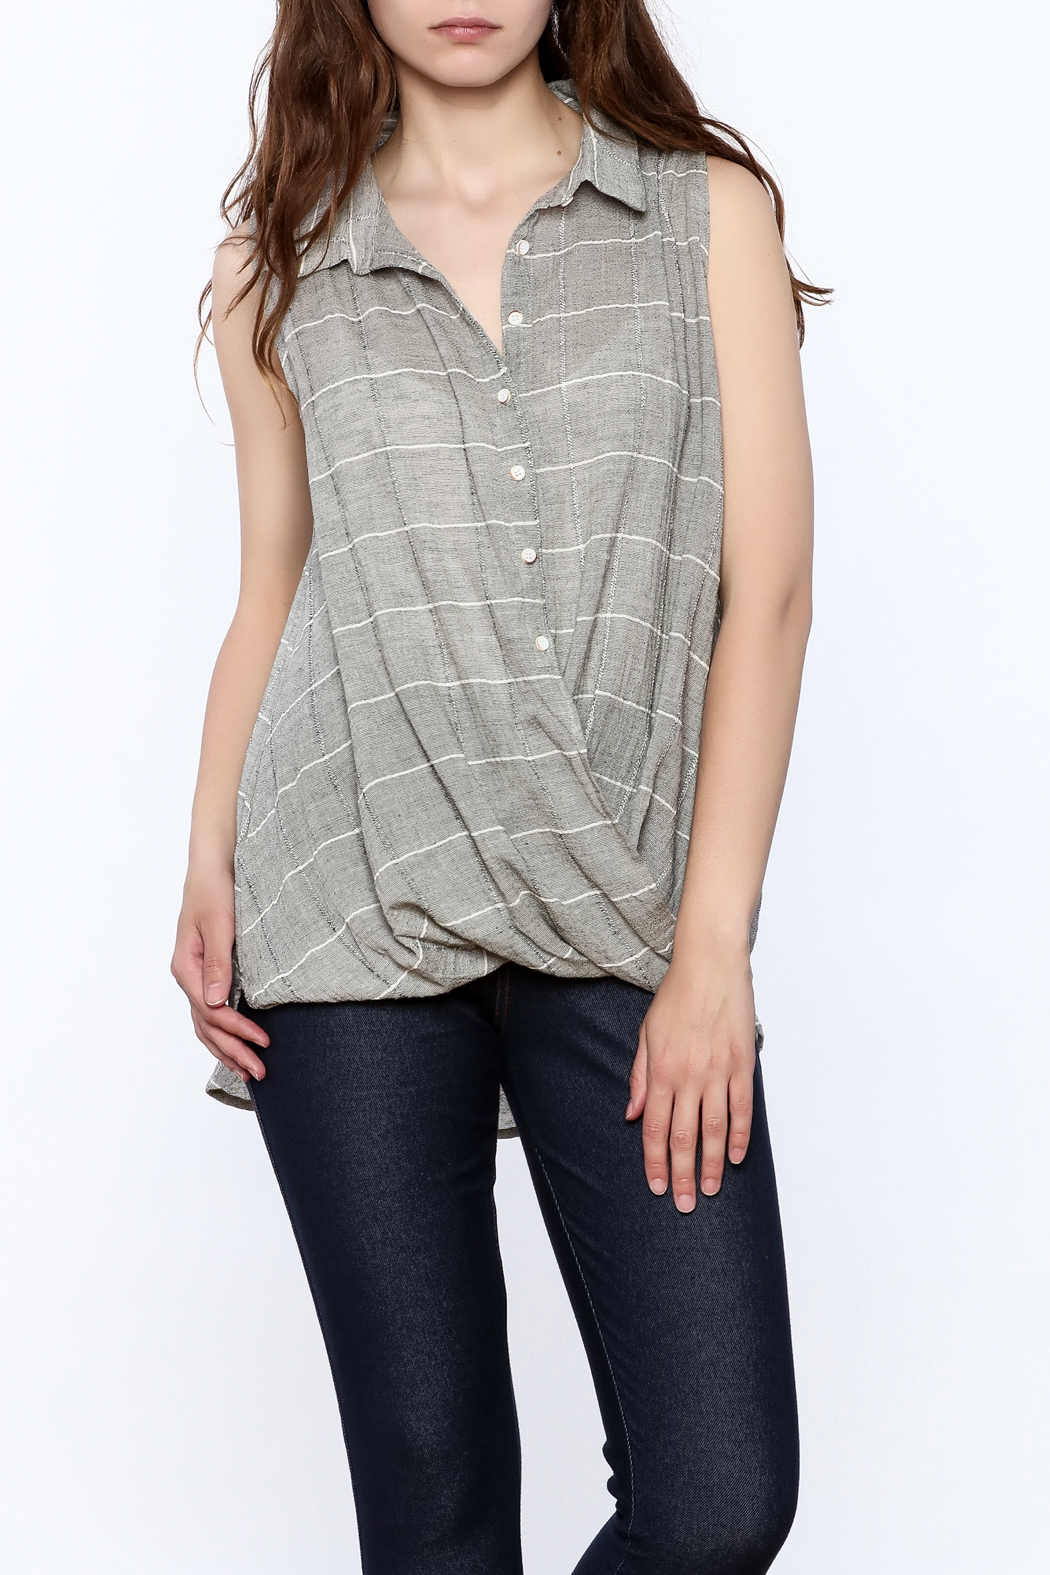 Jella Couture Grey Sleeveless Billowy Top - Front Cropped Image